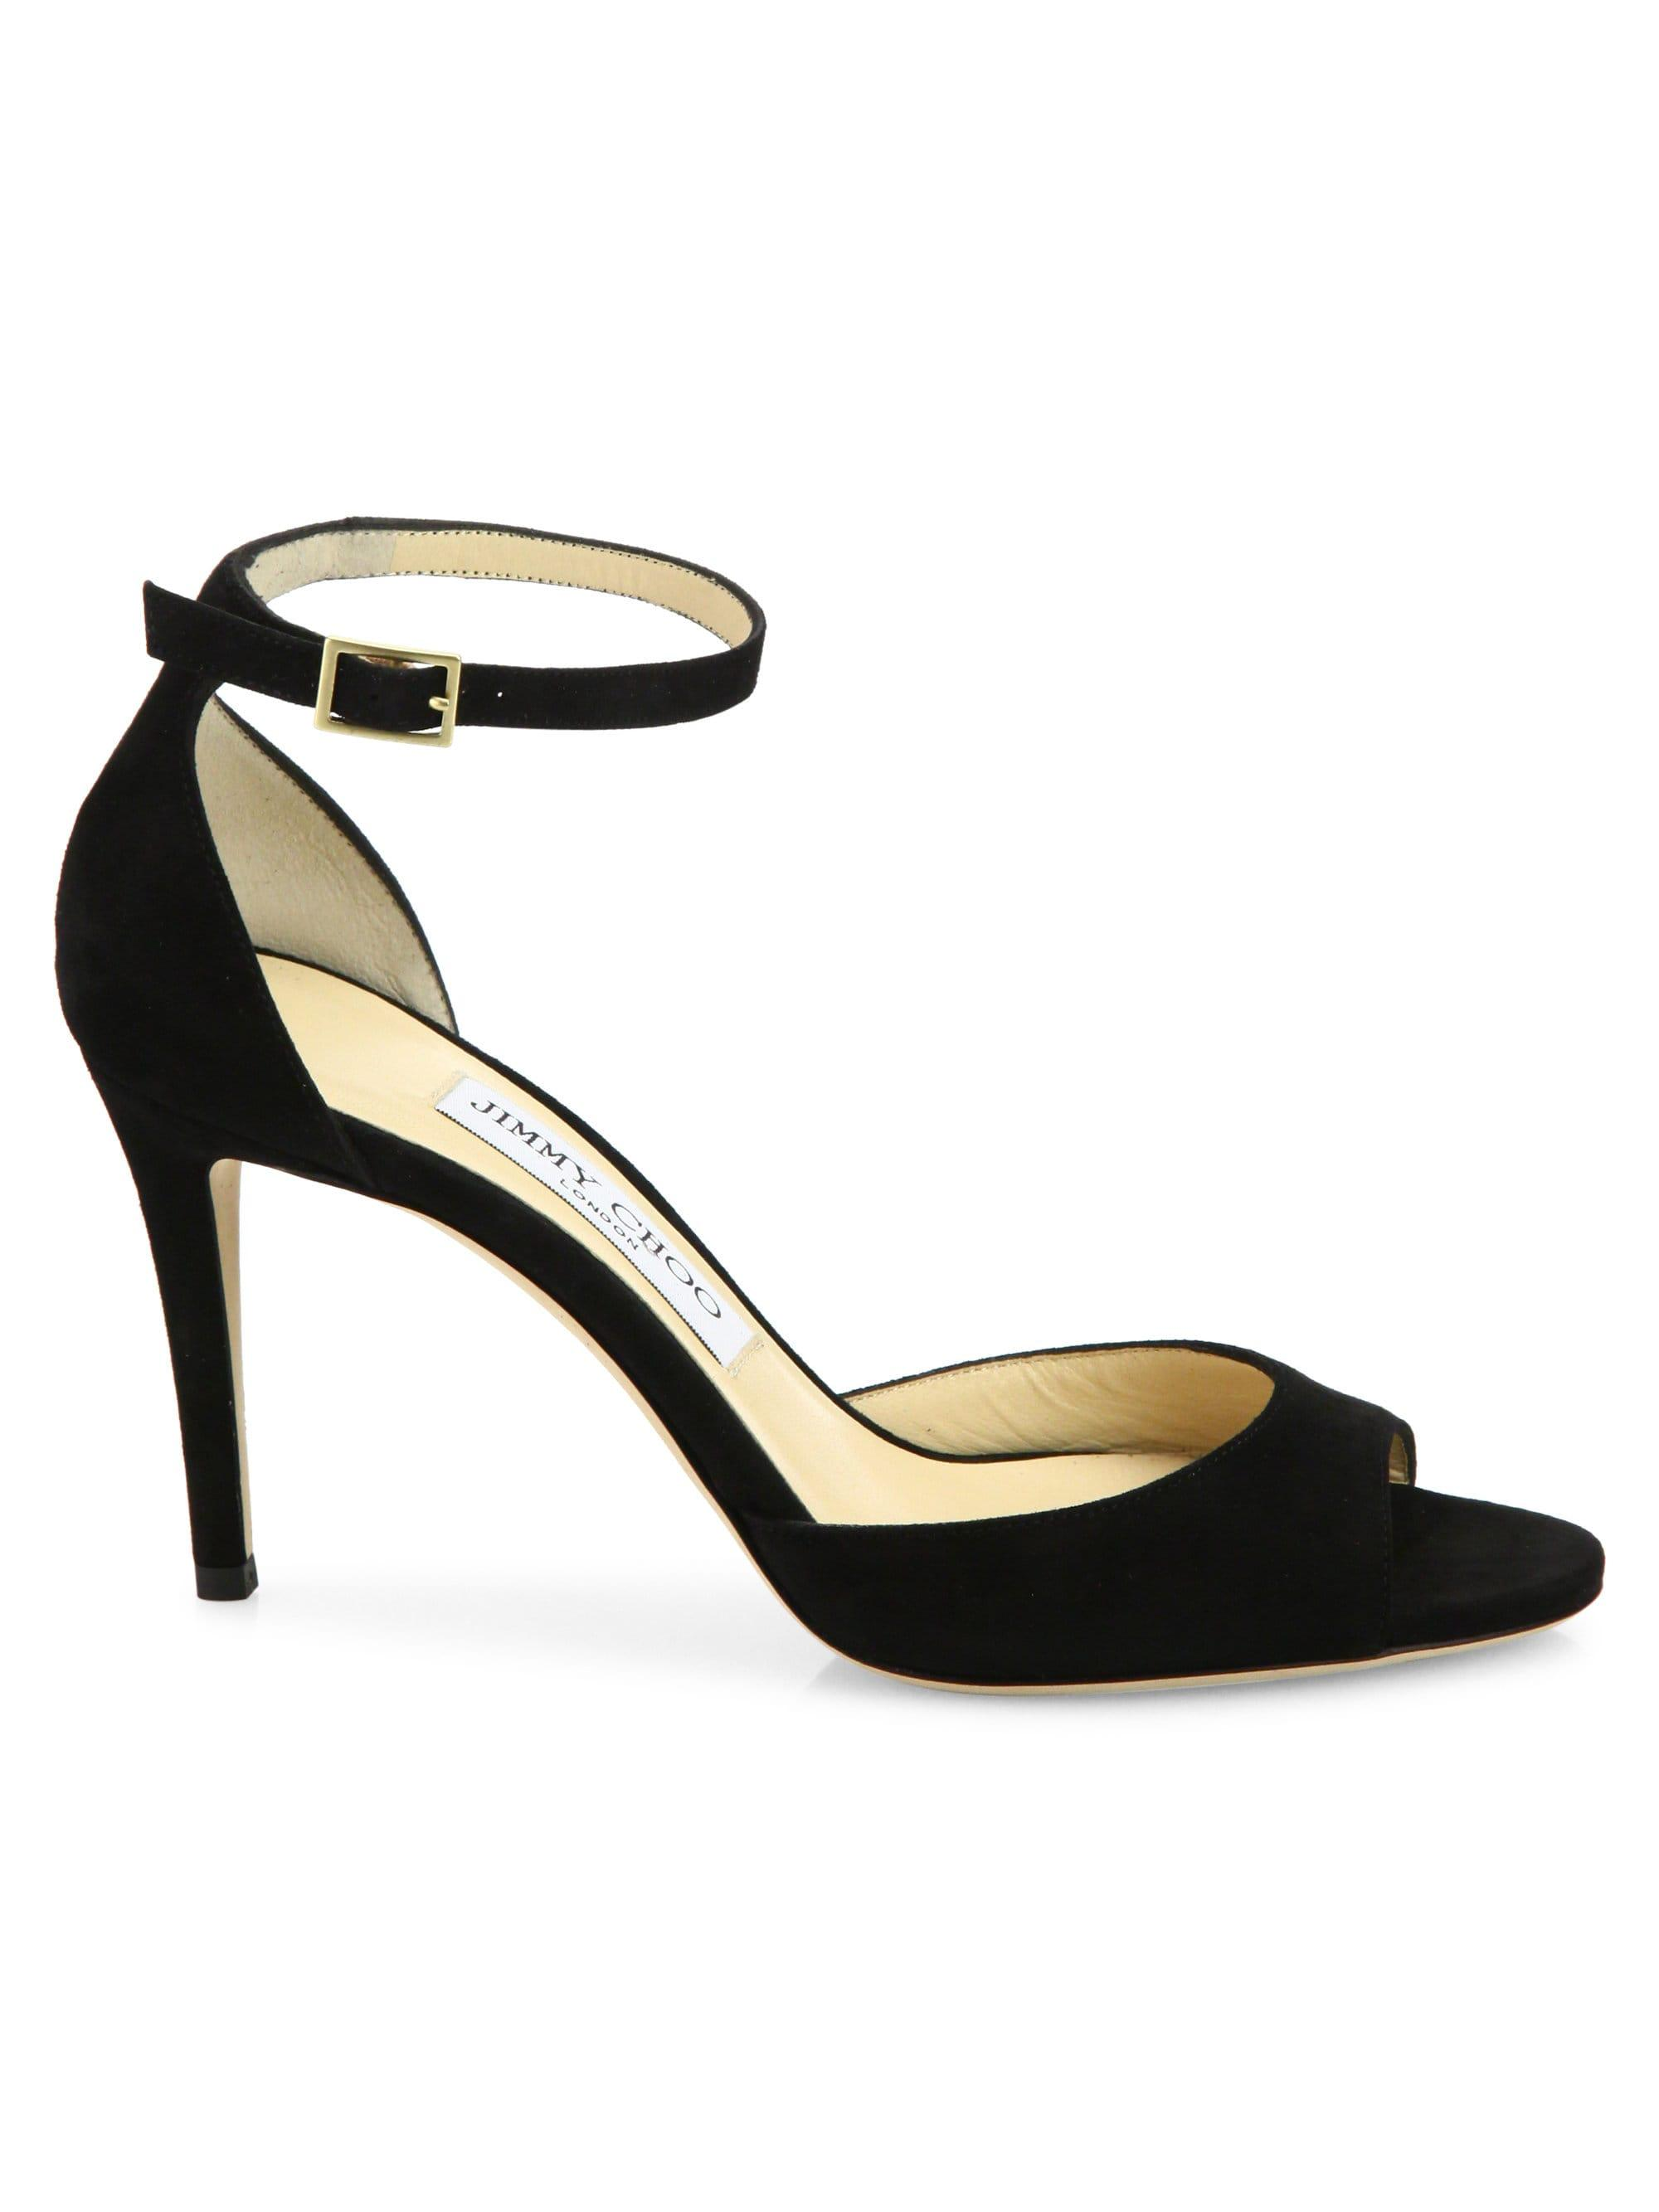 c61a81f9a394 Lyst - Jimmy Choo Annie 85 Suede D orsay Ankle-strap Sandals in Black